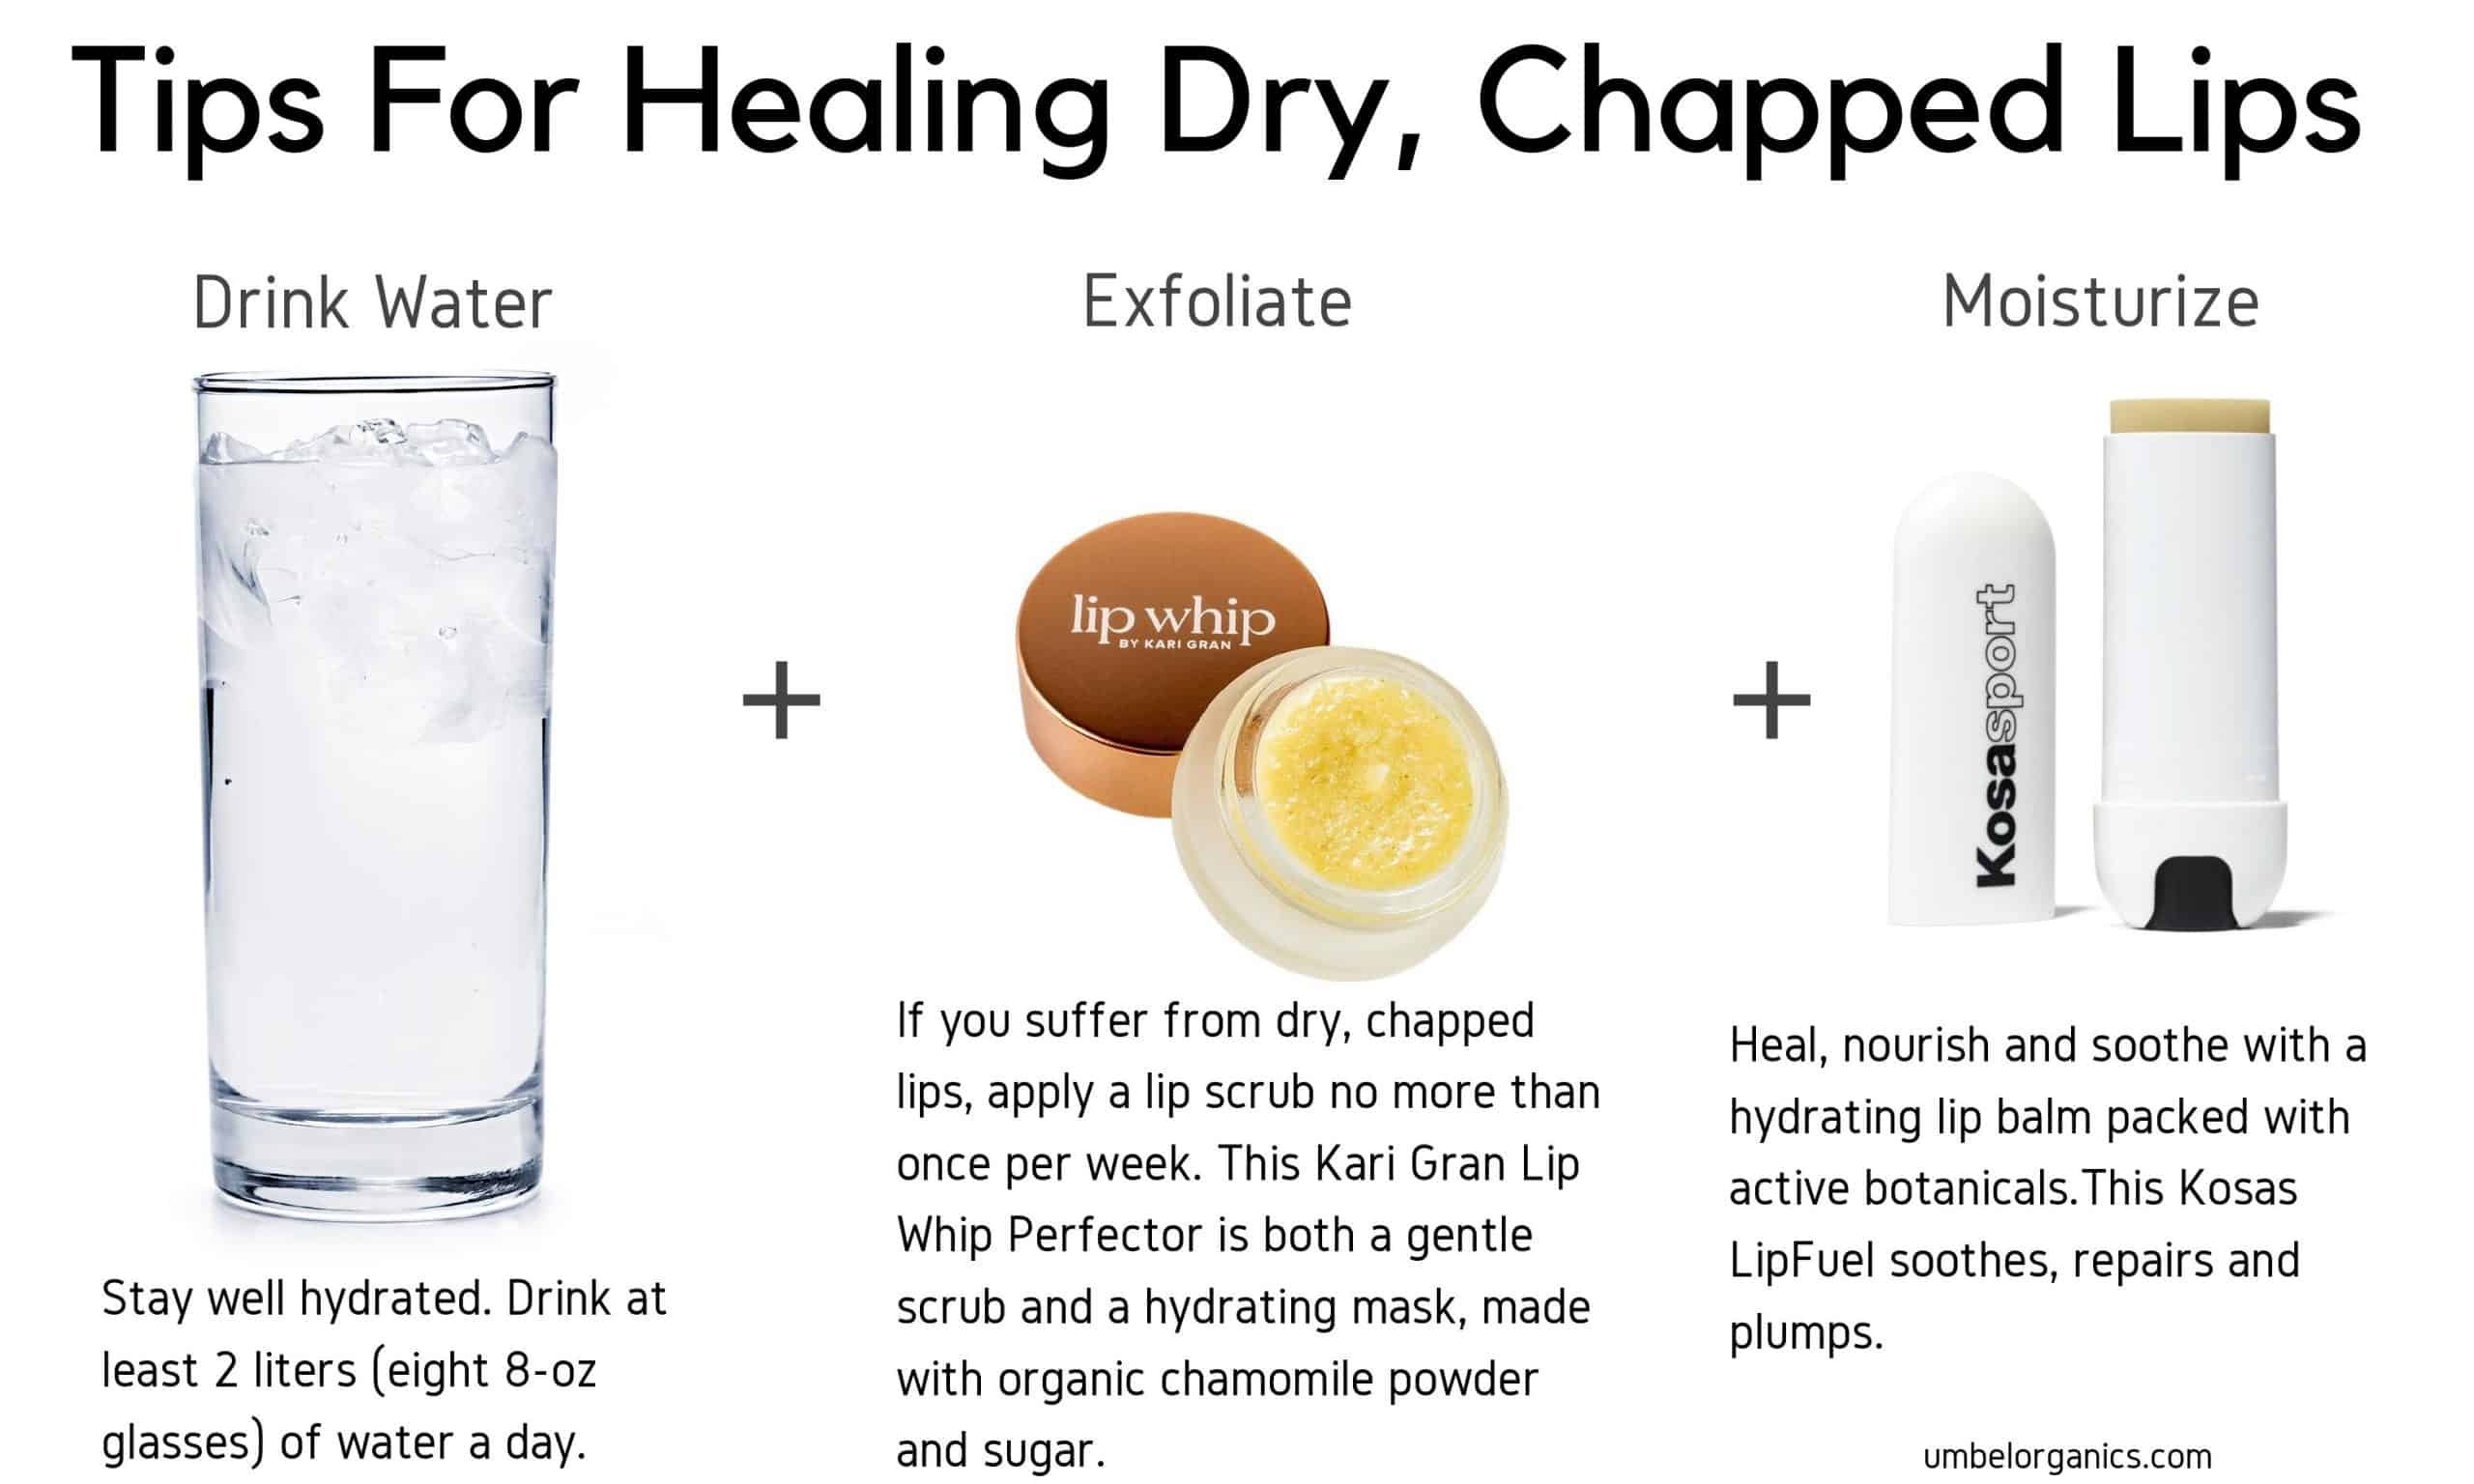 Tips For Hydrating Chapped Lips including water, a lip scrub and hydrating lip balm